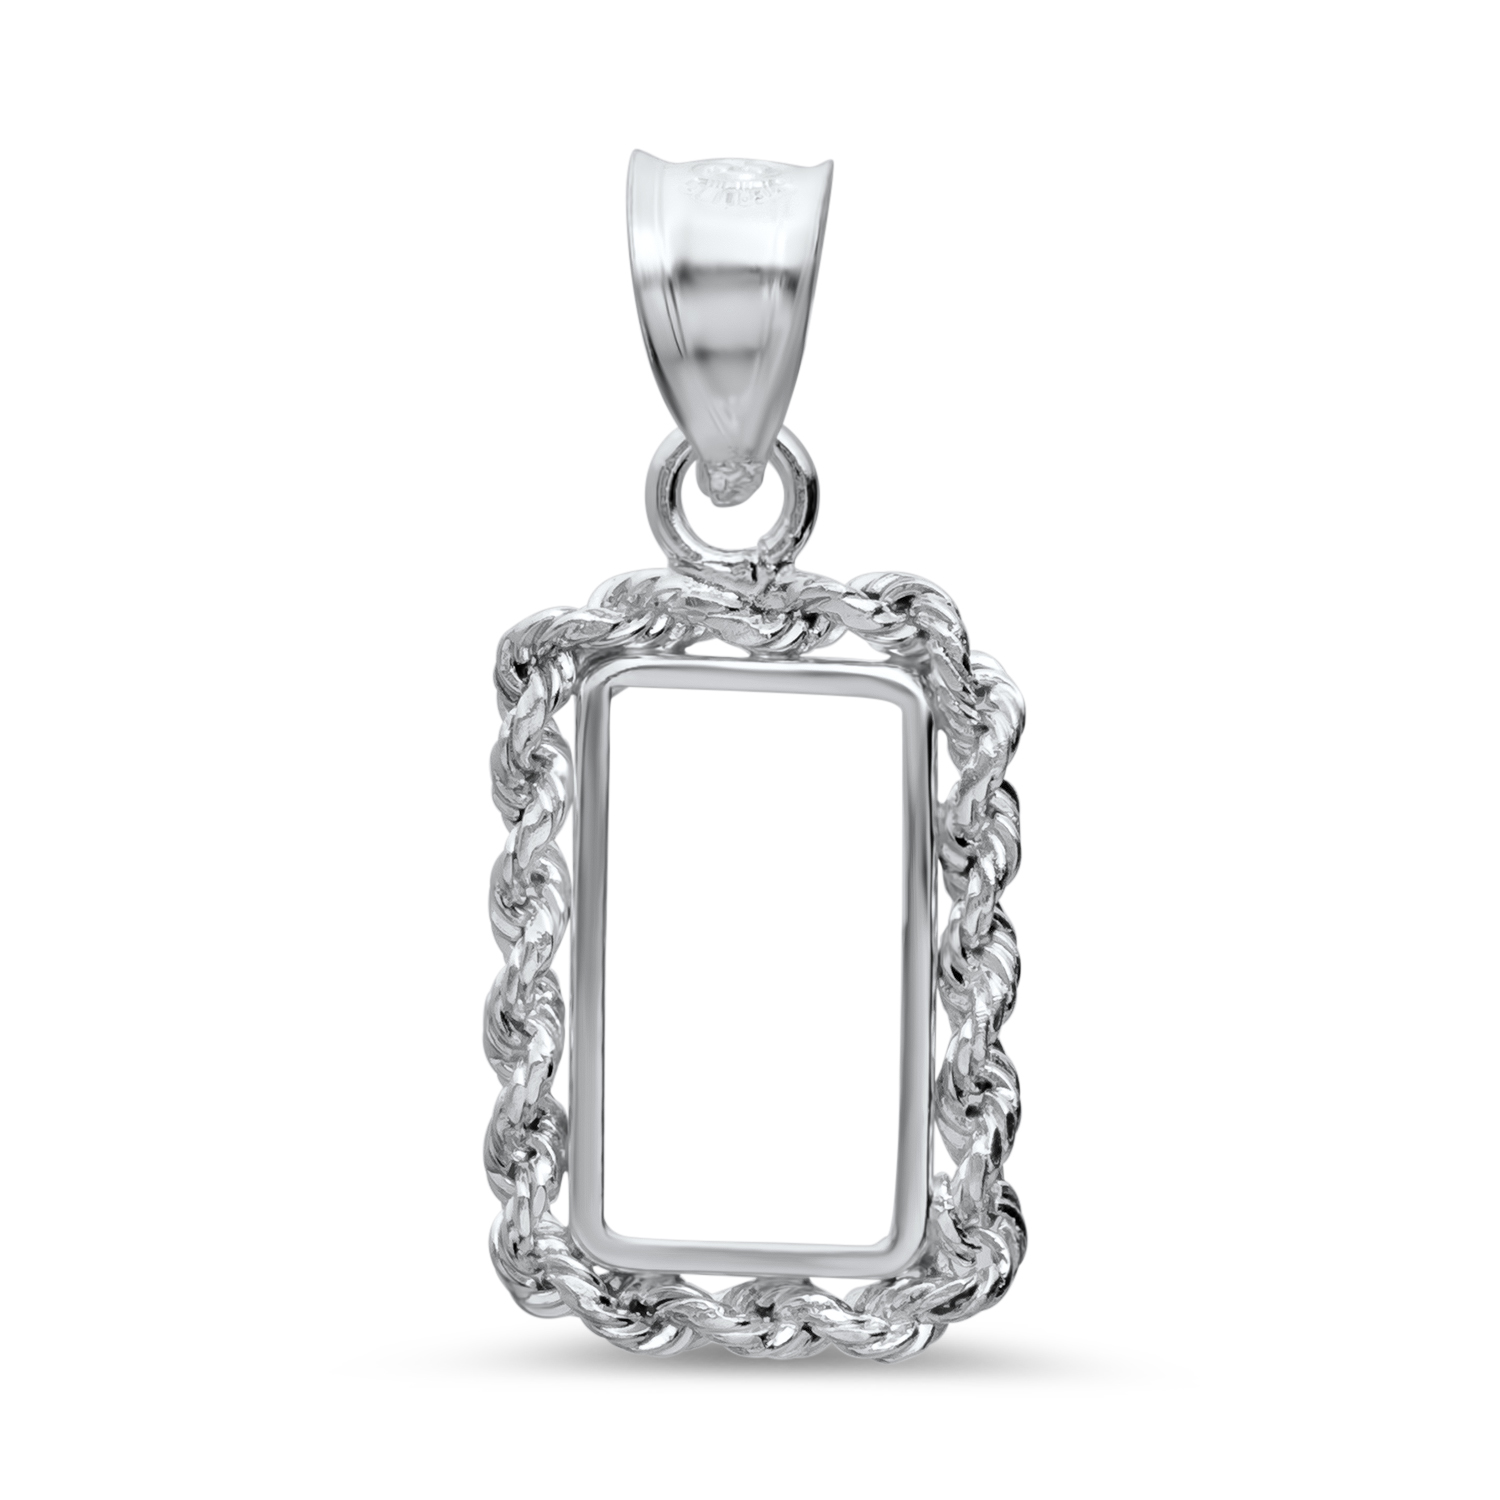 Sterling Silver Bezels (Fits 1 Gram Bars, Prong Rope-Style)